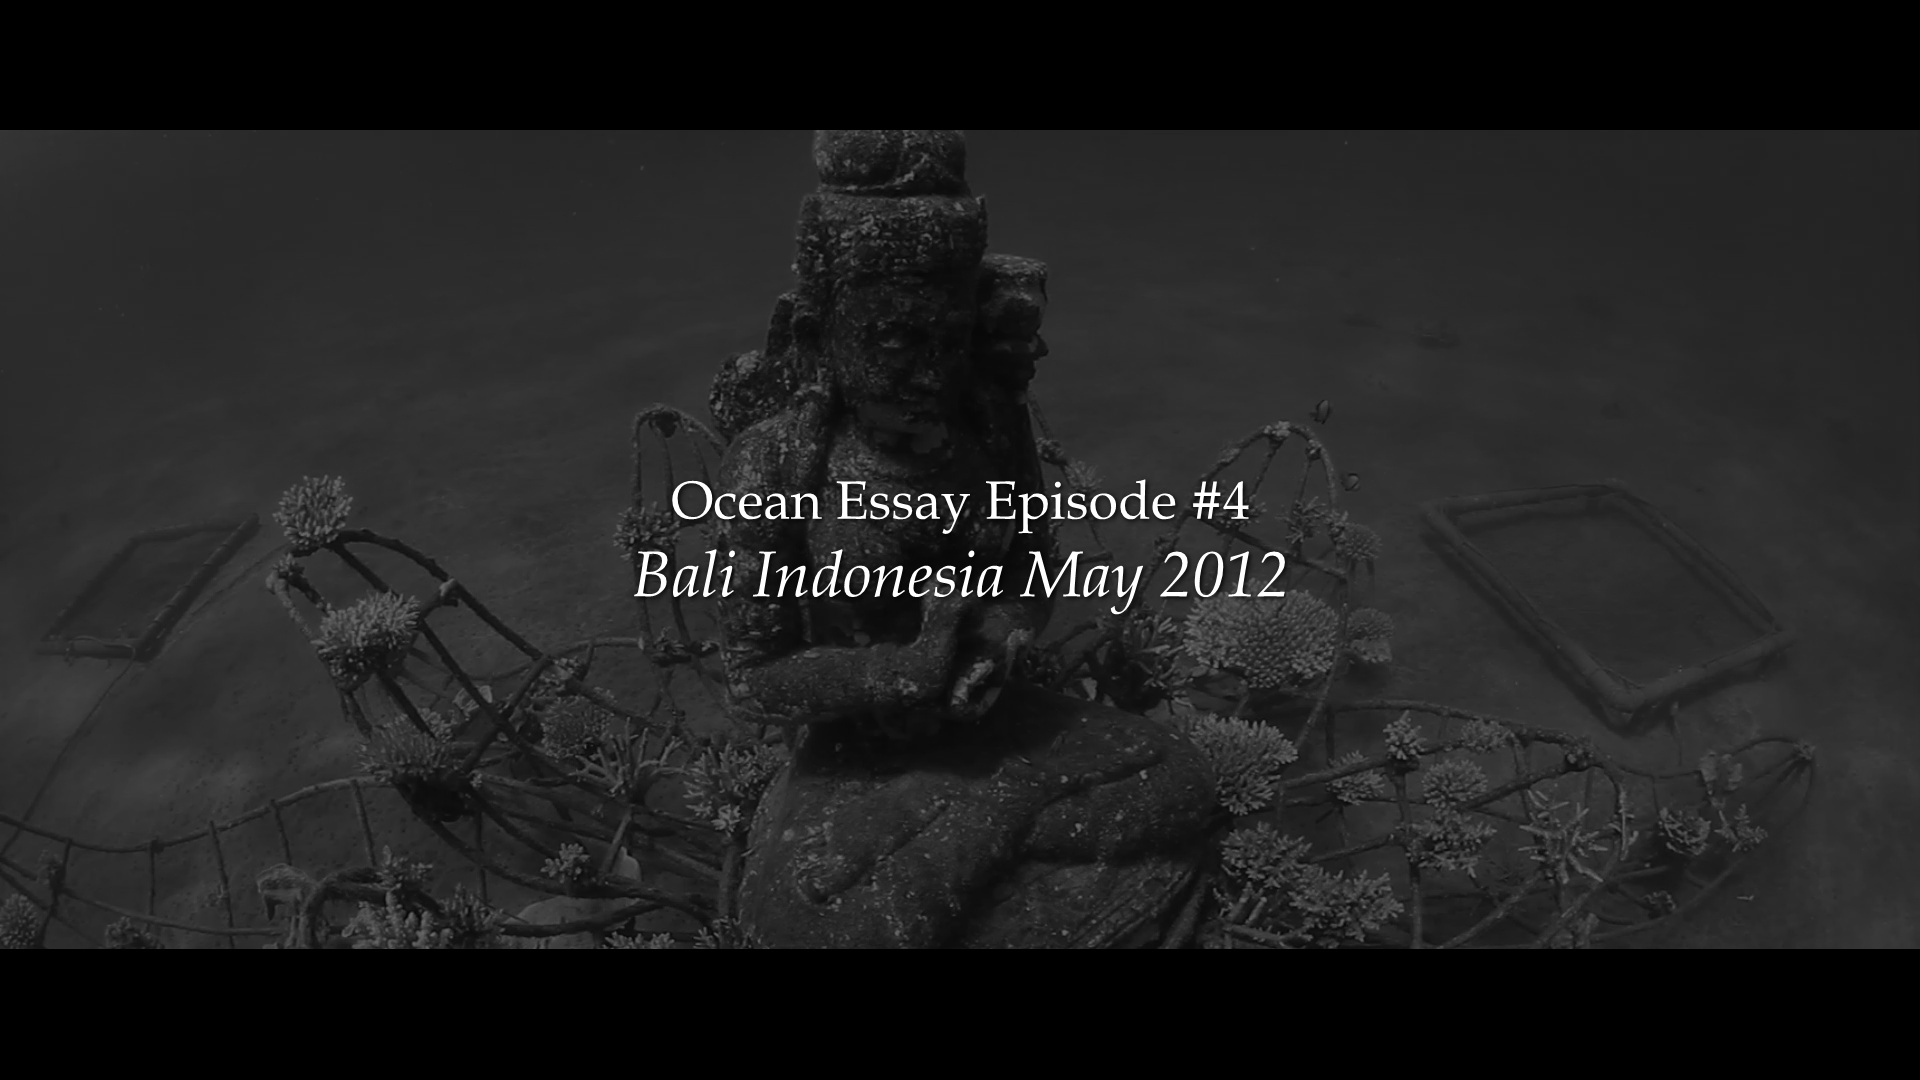 Ocean Essay Episode #04: Bali Indonesia May 2012